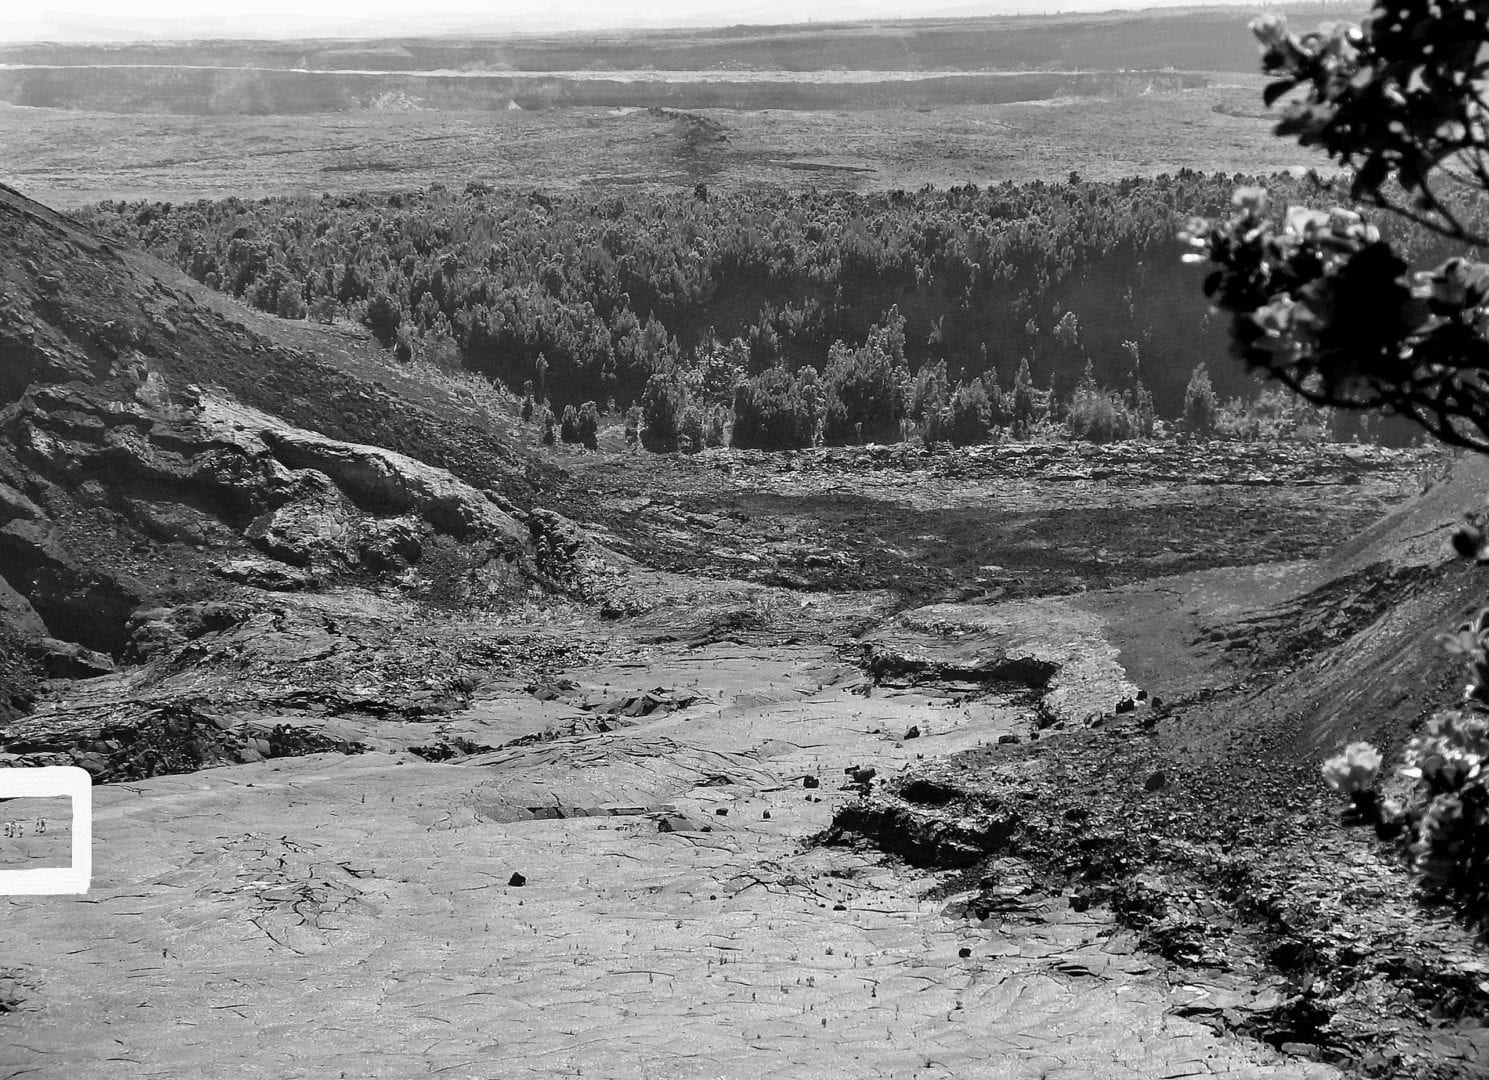 A black and white image of the Kilauea Iki Crater Overlook